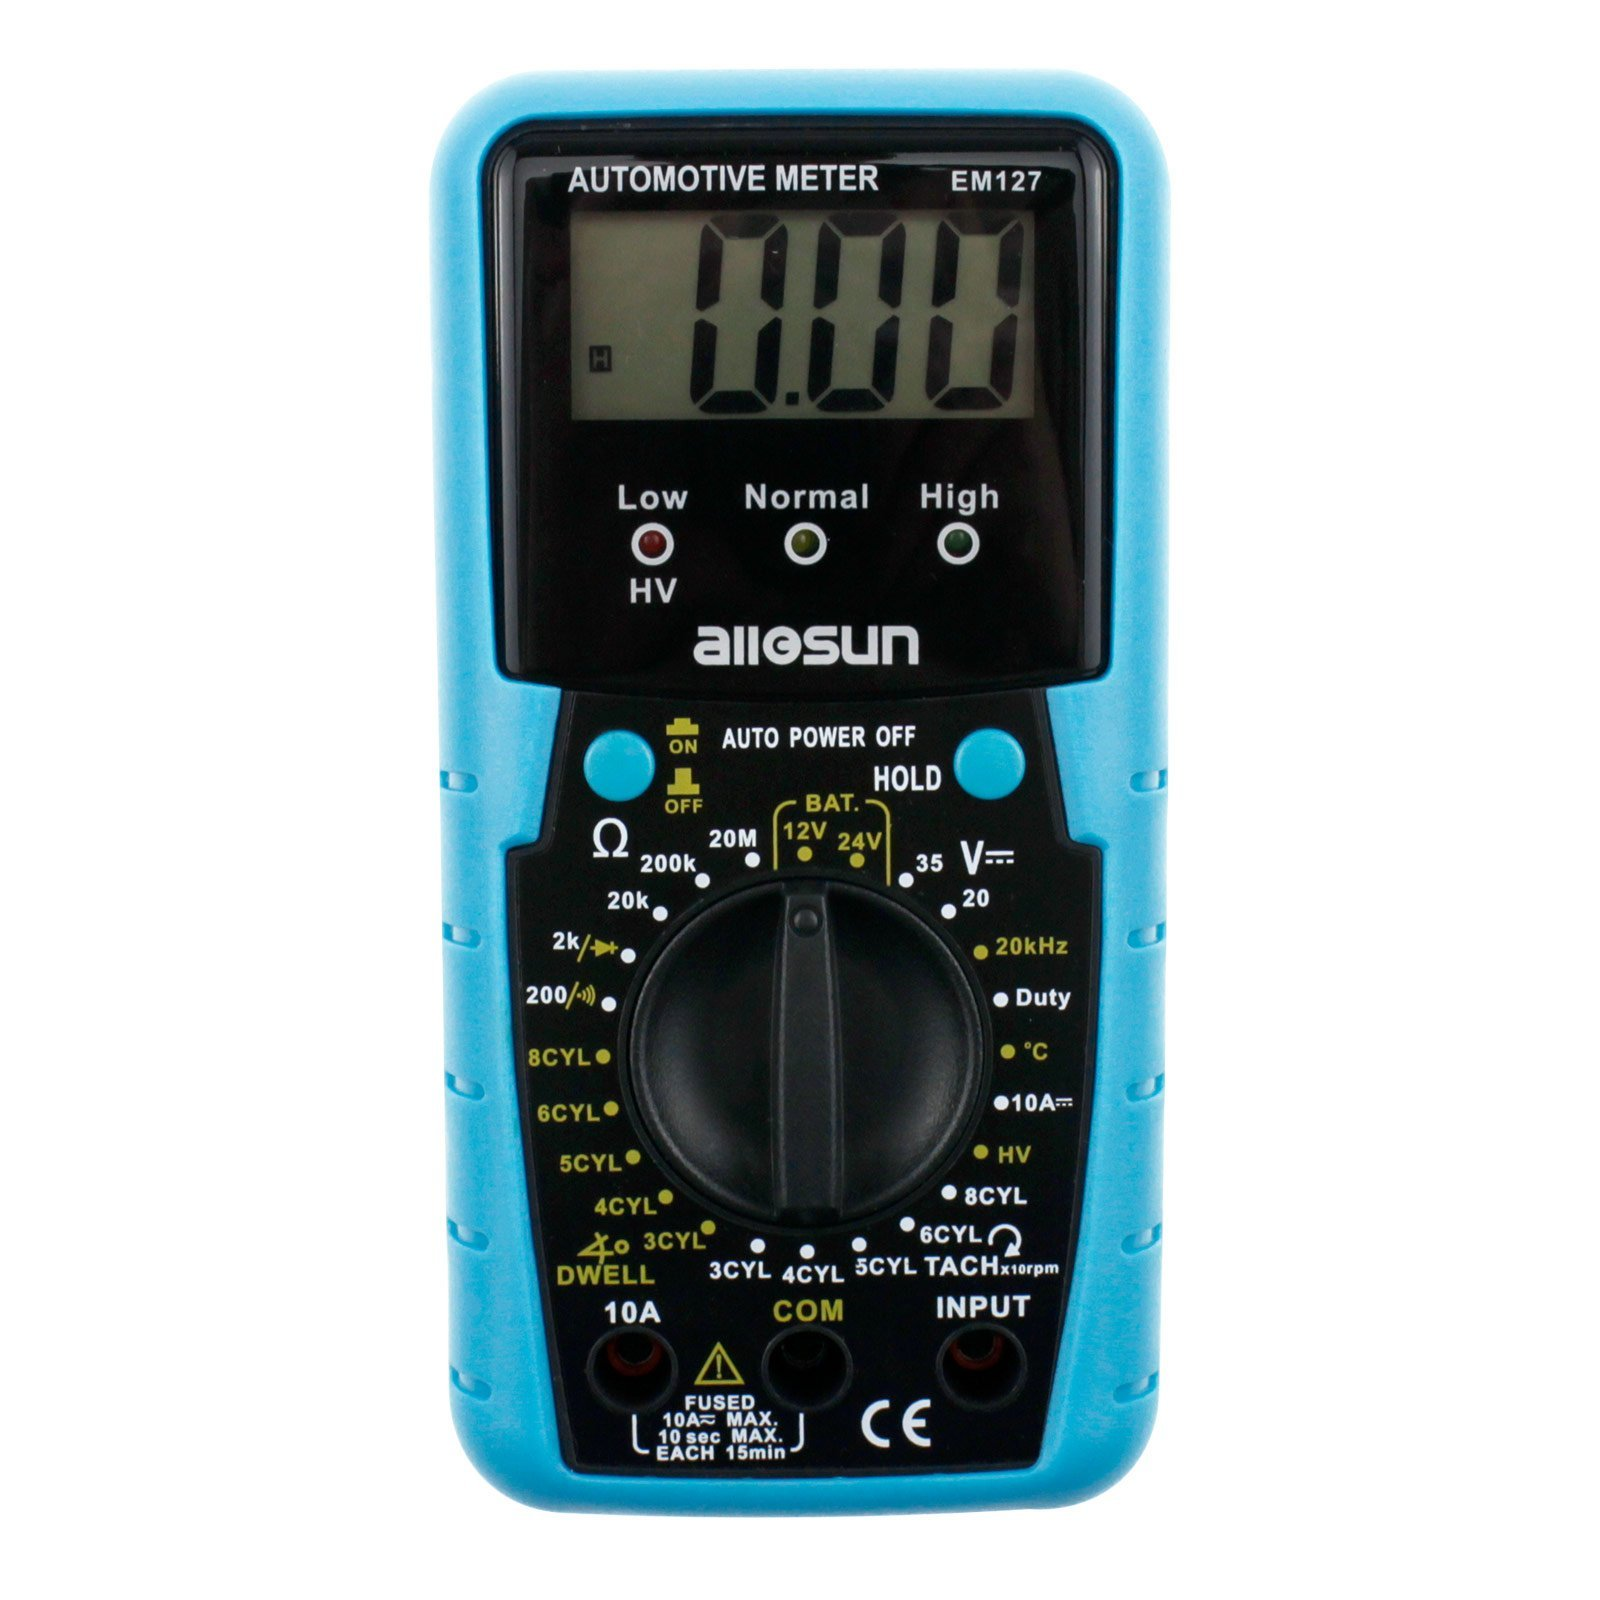 all-sun Automotive Multimeter DMM DC Volt Ohm Temp Frequency Diode and Continuity Tester Automotive Diagnosis Tester Test RPM Dwell Angle